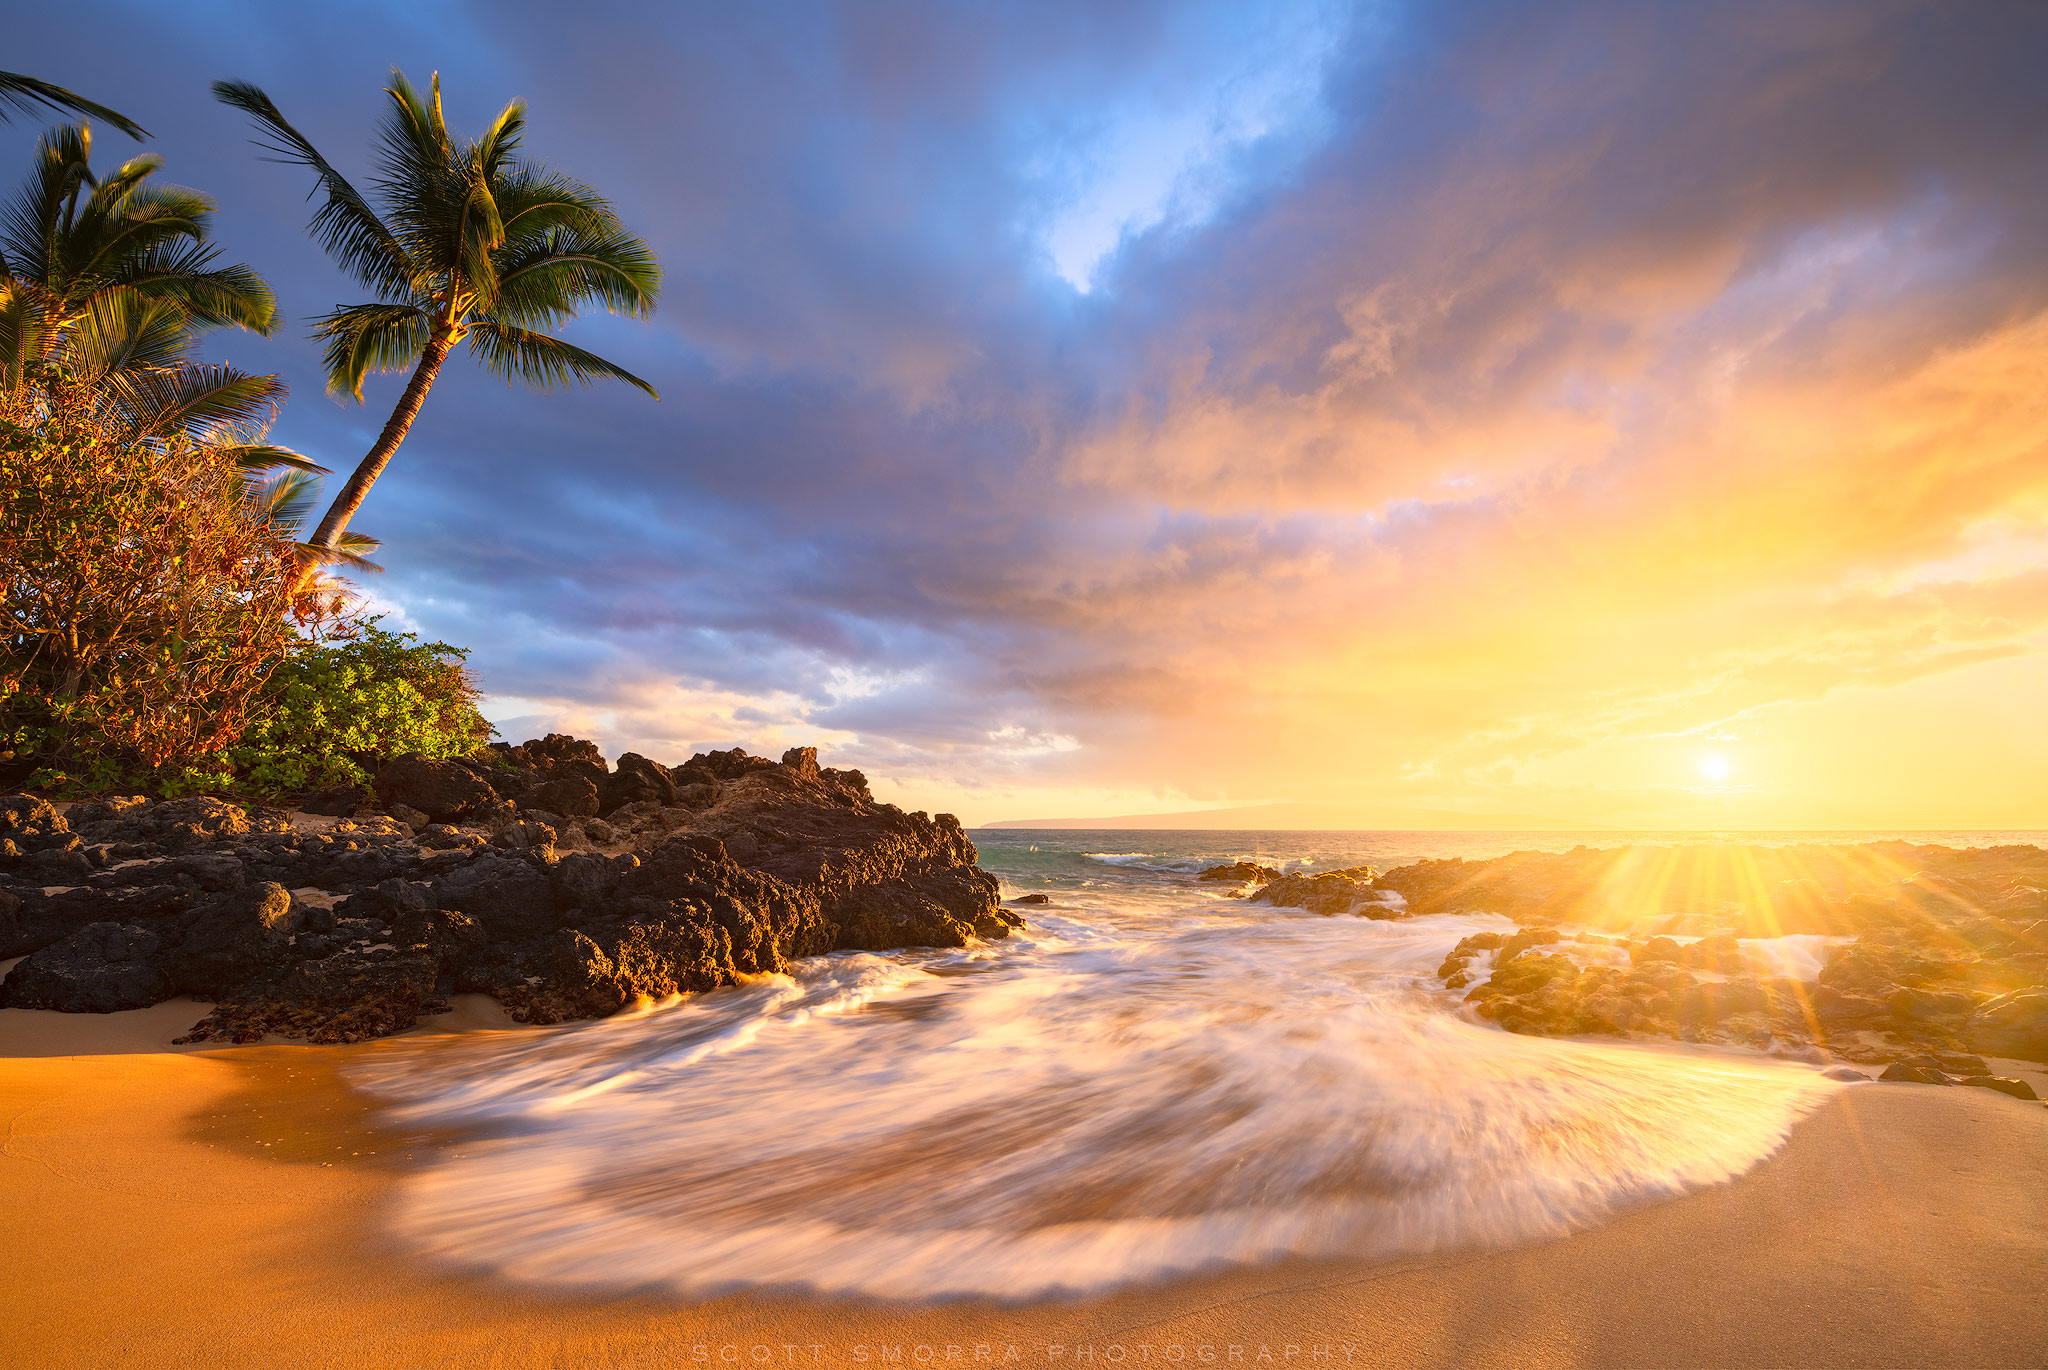 Hawaii, Maui, Paradise, sunset, light, coconut, palm, tree, beach, tropical, islands, , photo